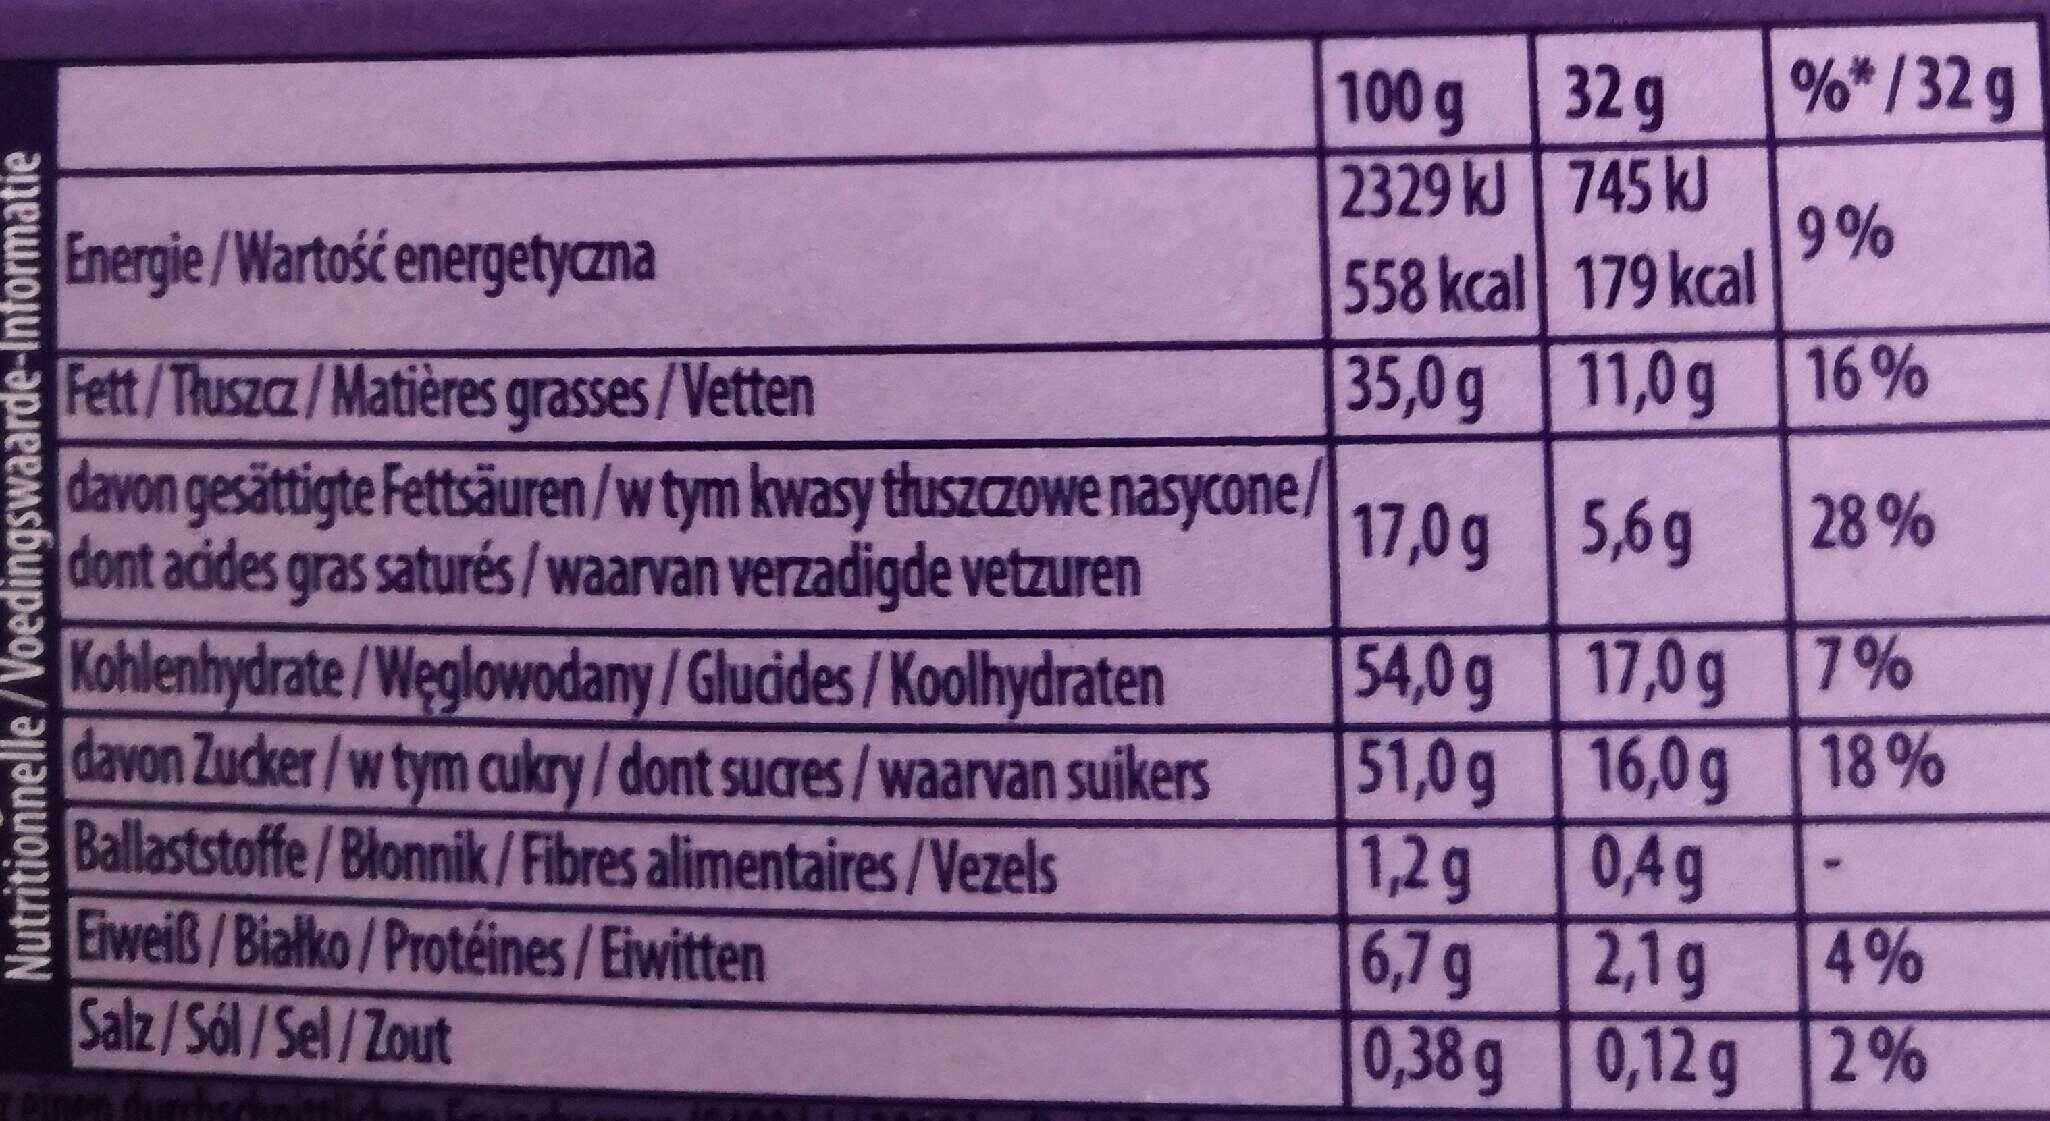 Oeuf coque - Informations nutritionnelles - fr